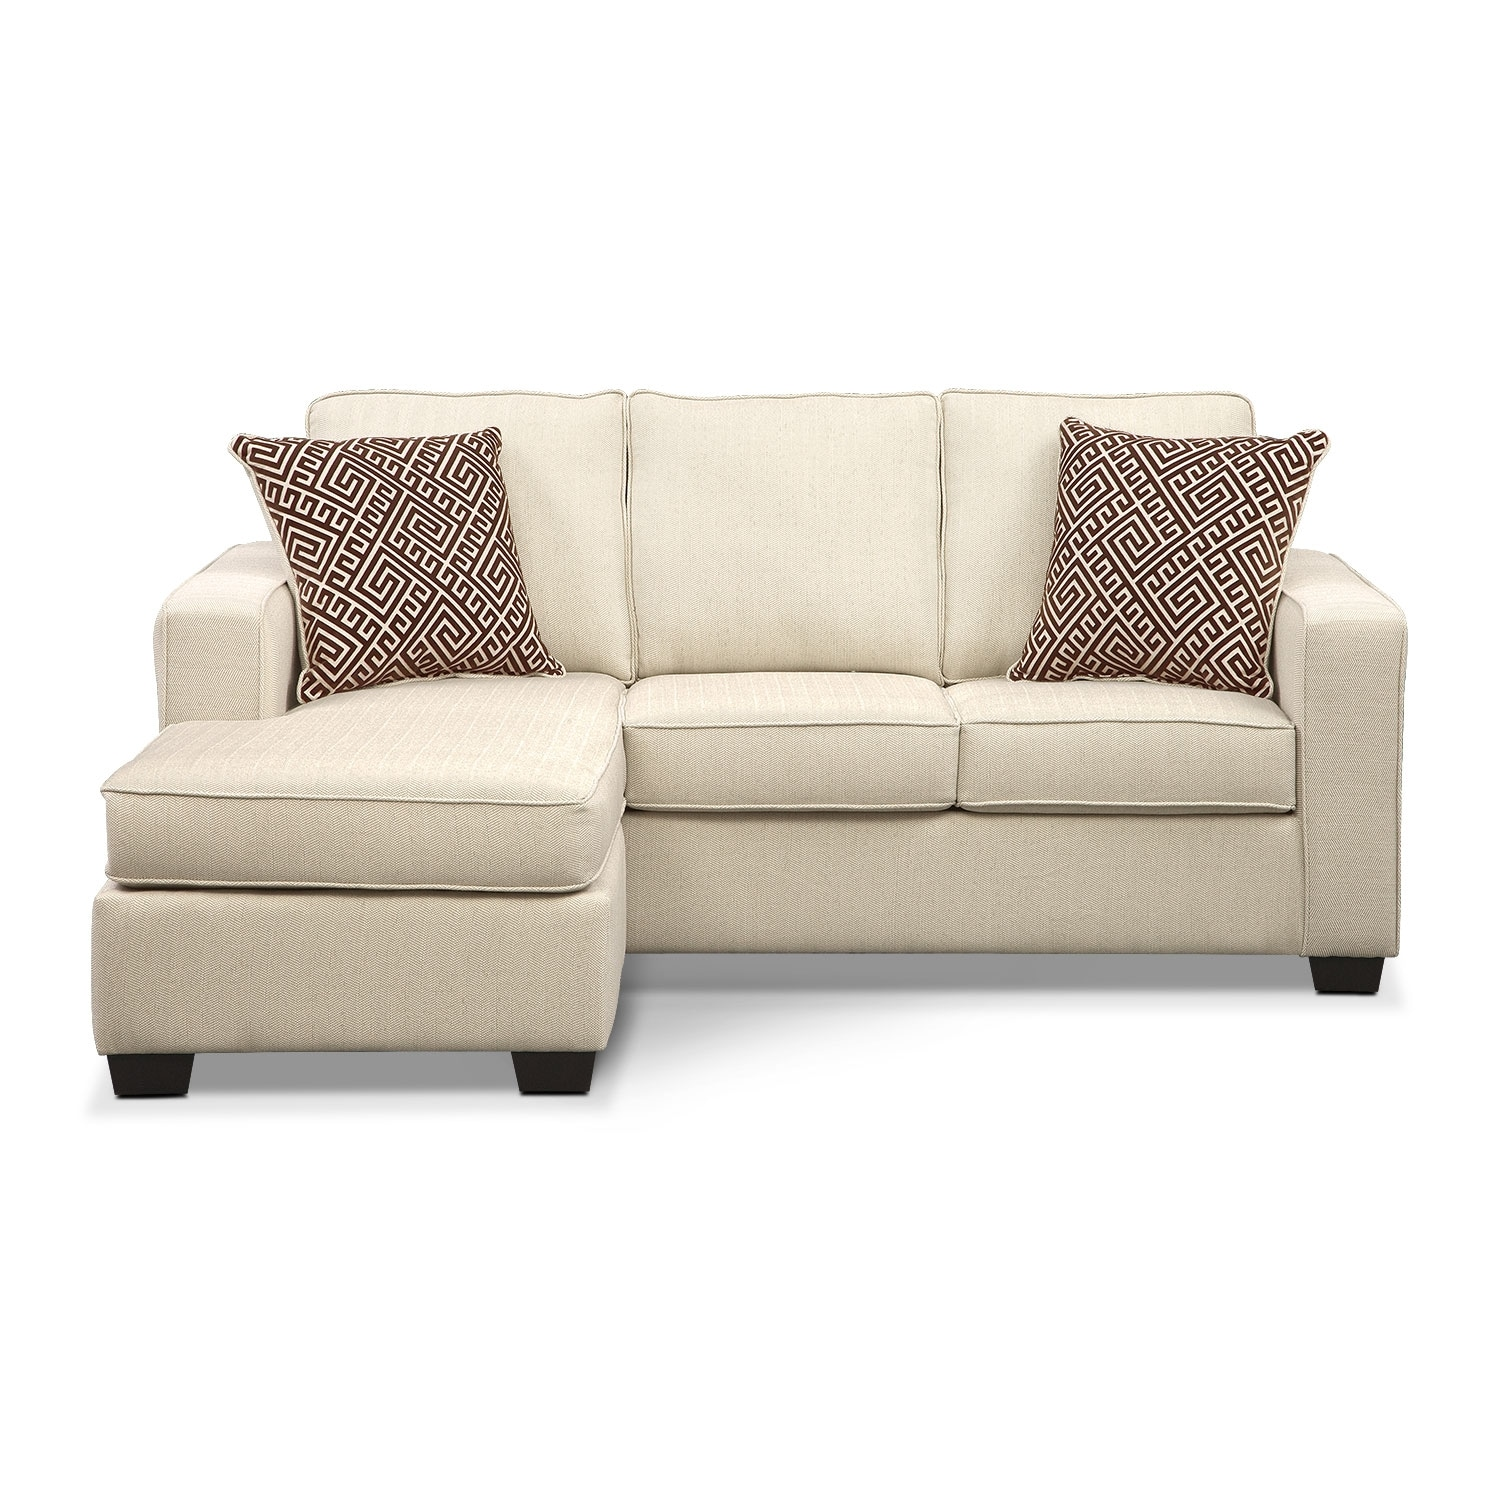 Sterling innerspring sleeper sofa with chaise beige for Beige sectional with chaise